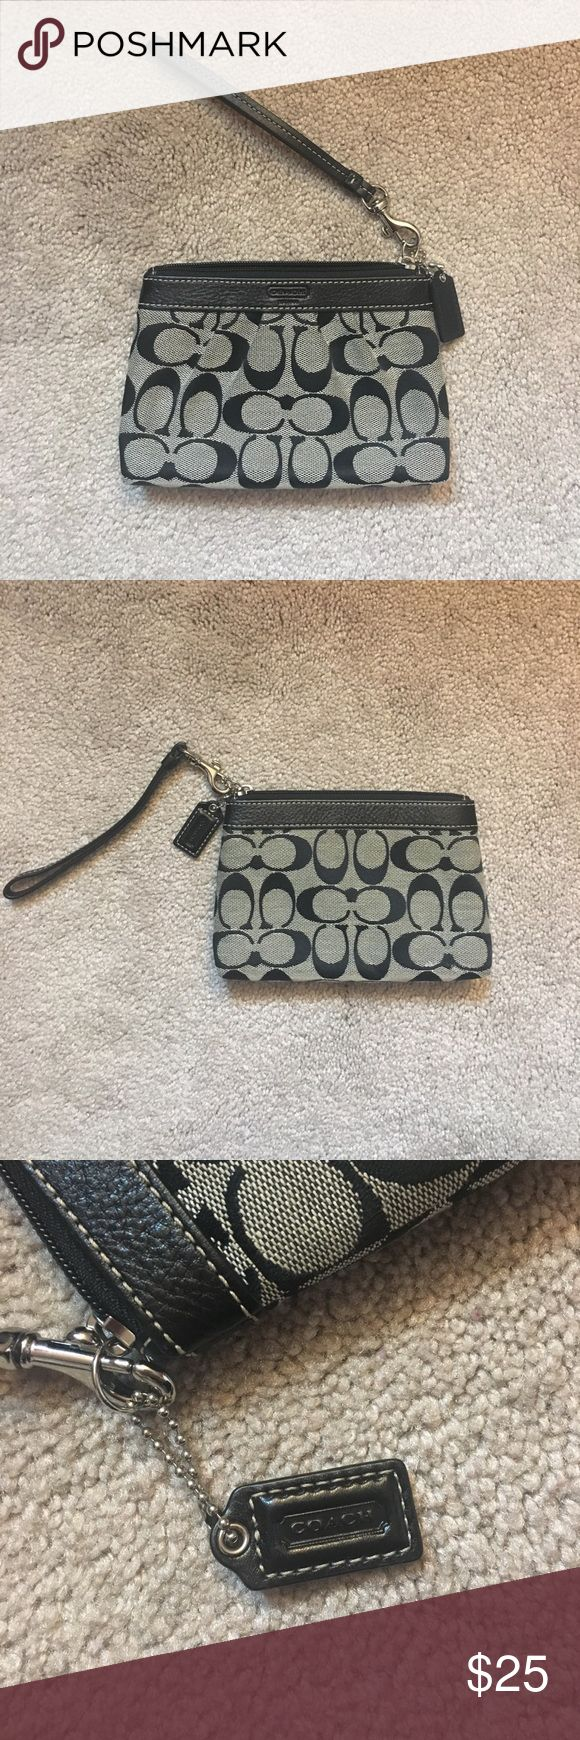 Black Coach Clutch A coach cluch/wristlet in like-new condition! Coach Bags Clutches & Wristlets